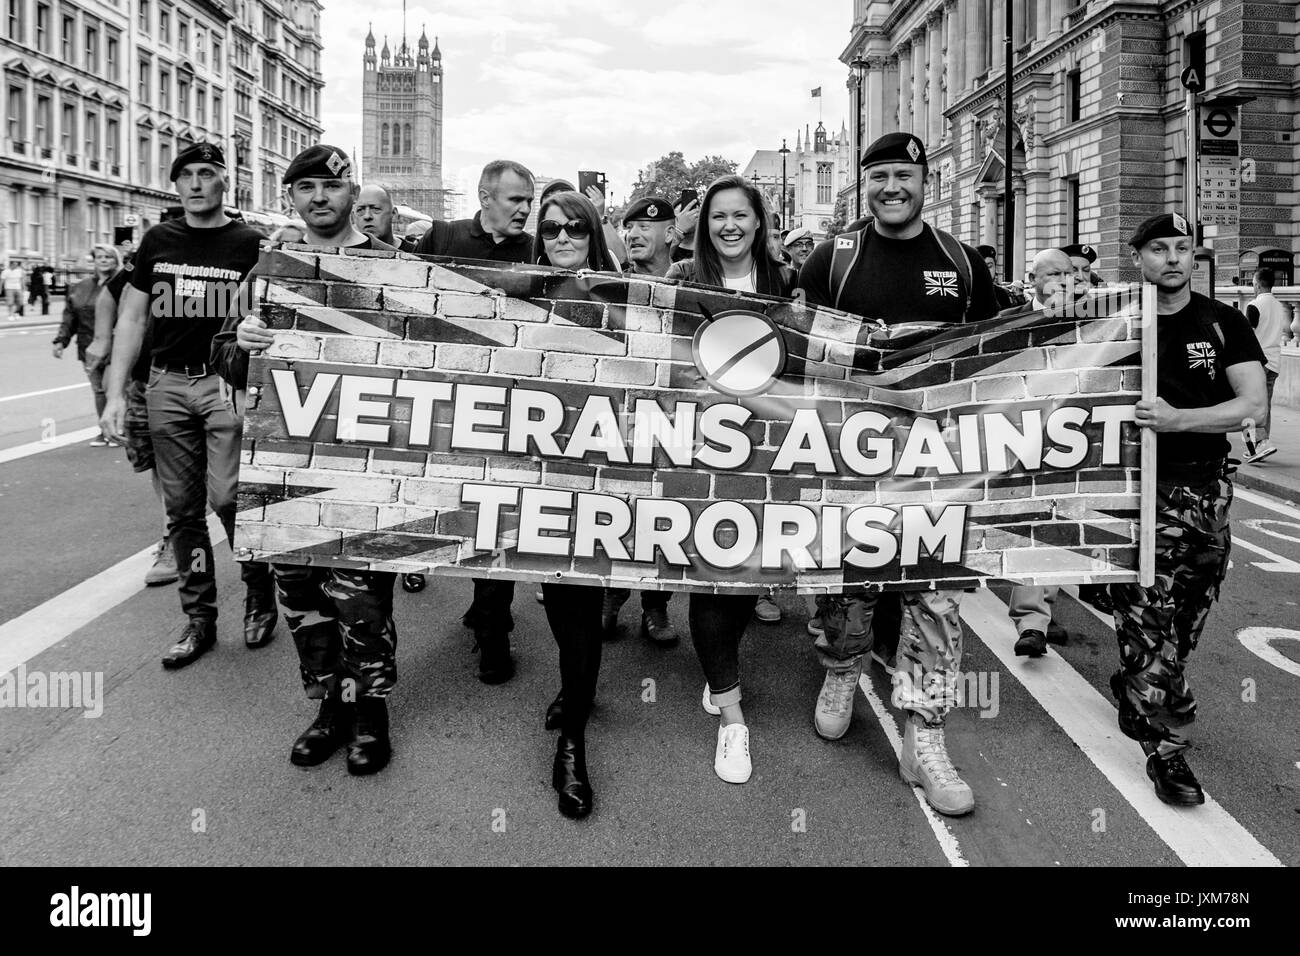 British Army Veterans March To Downing Street To Demand That The Government Does More To Combat Islamic Terrorism, Whitehall, London, UK - Stock Image